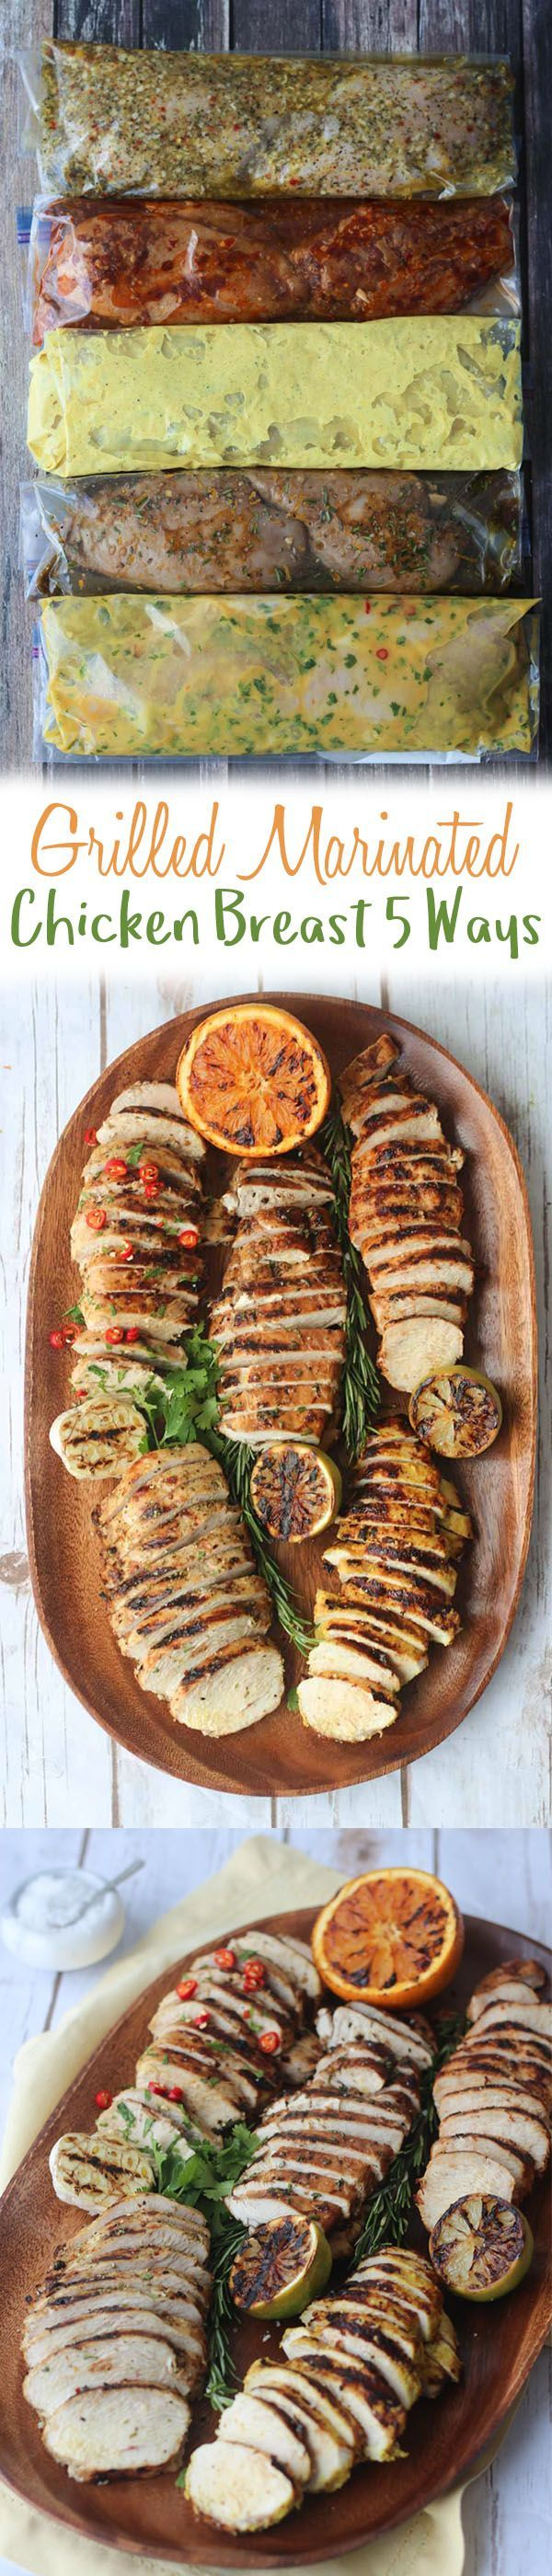 5 Grilled Marinated Chicken Breast Recipes will become your life saver during those busy week nights.